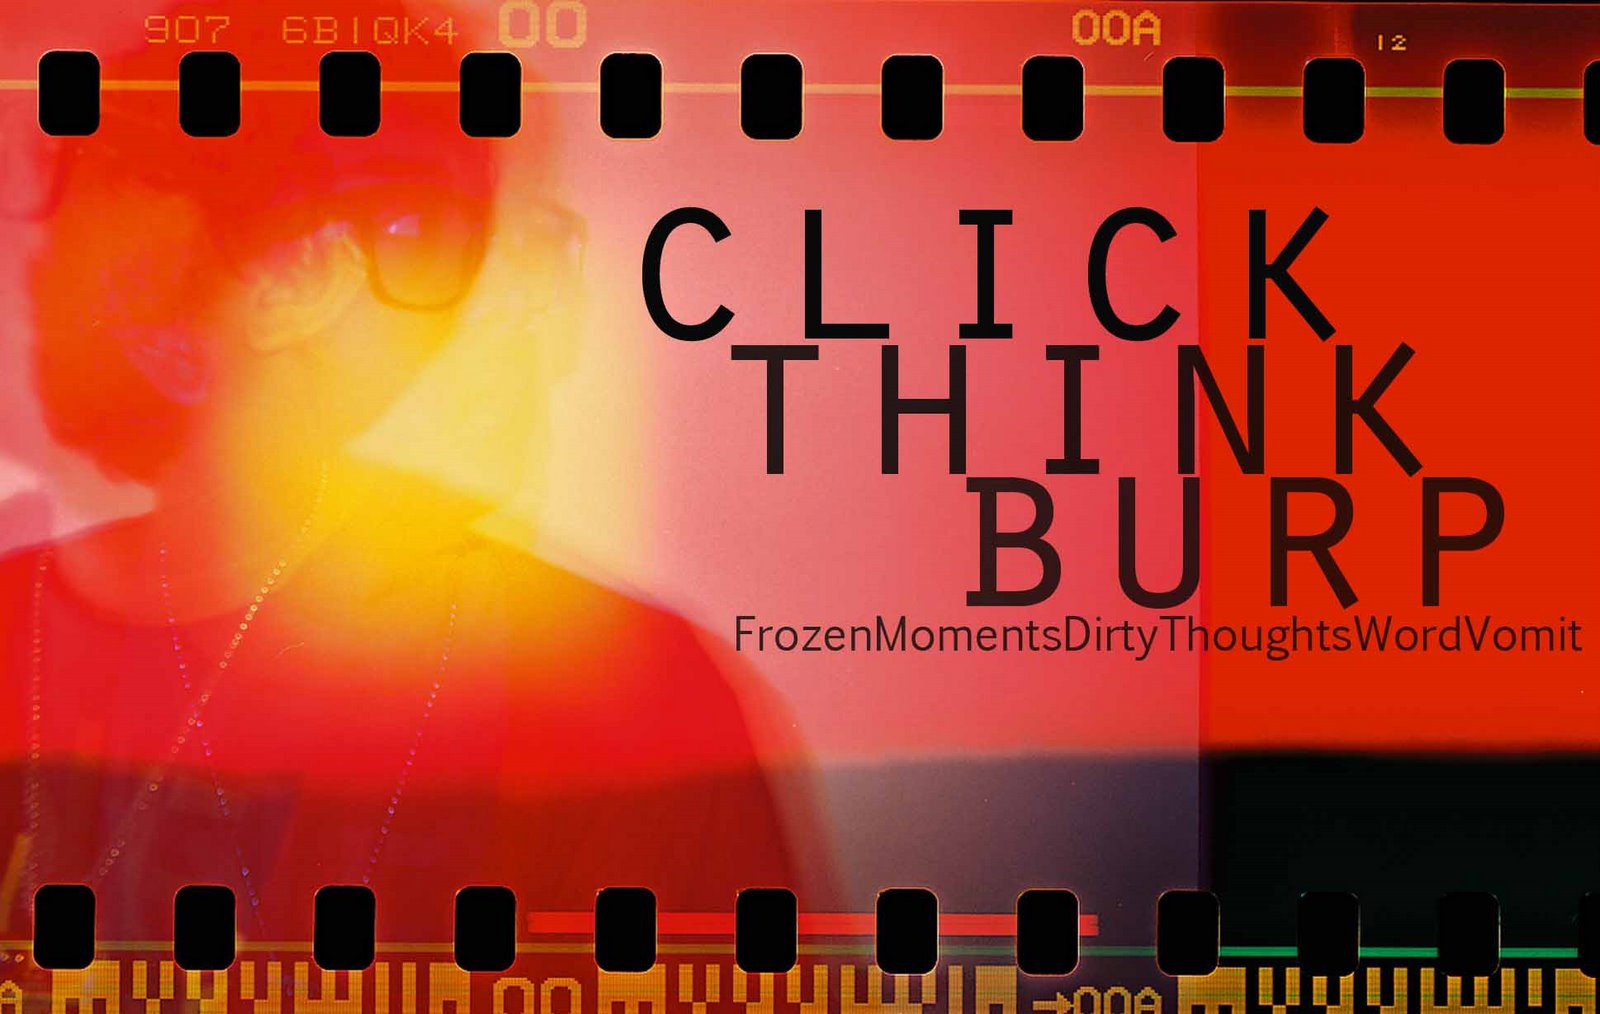 CLICK.THINK.BURP